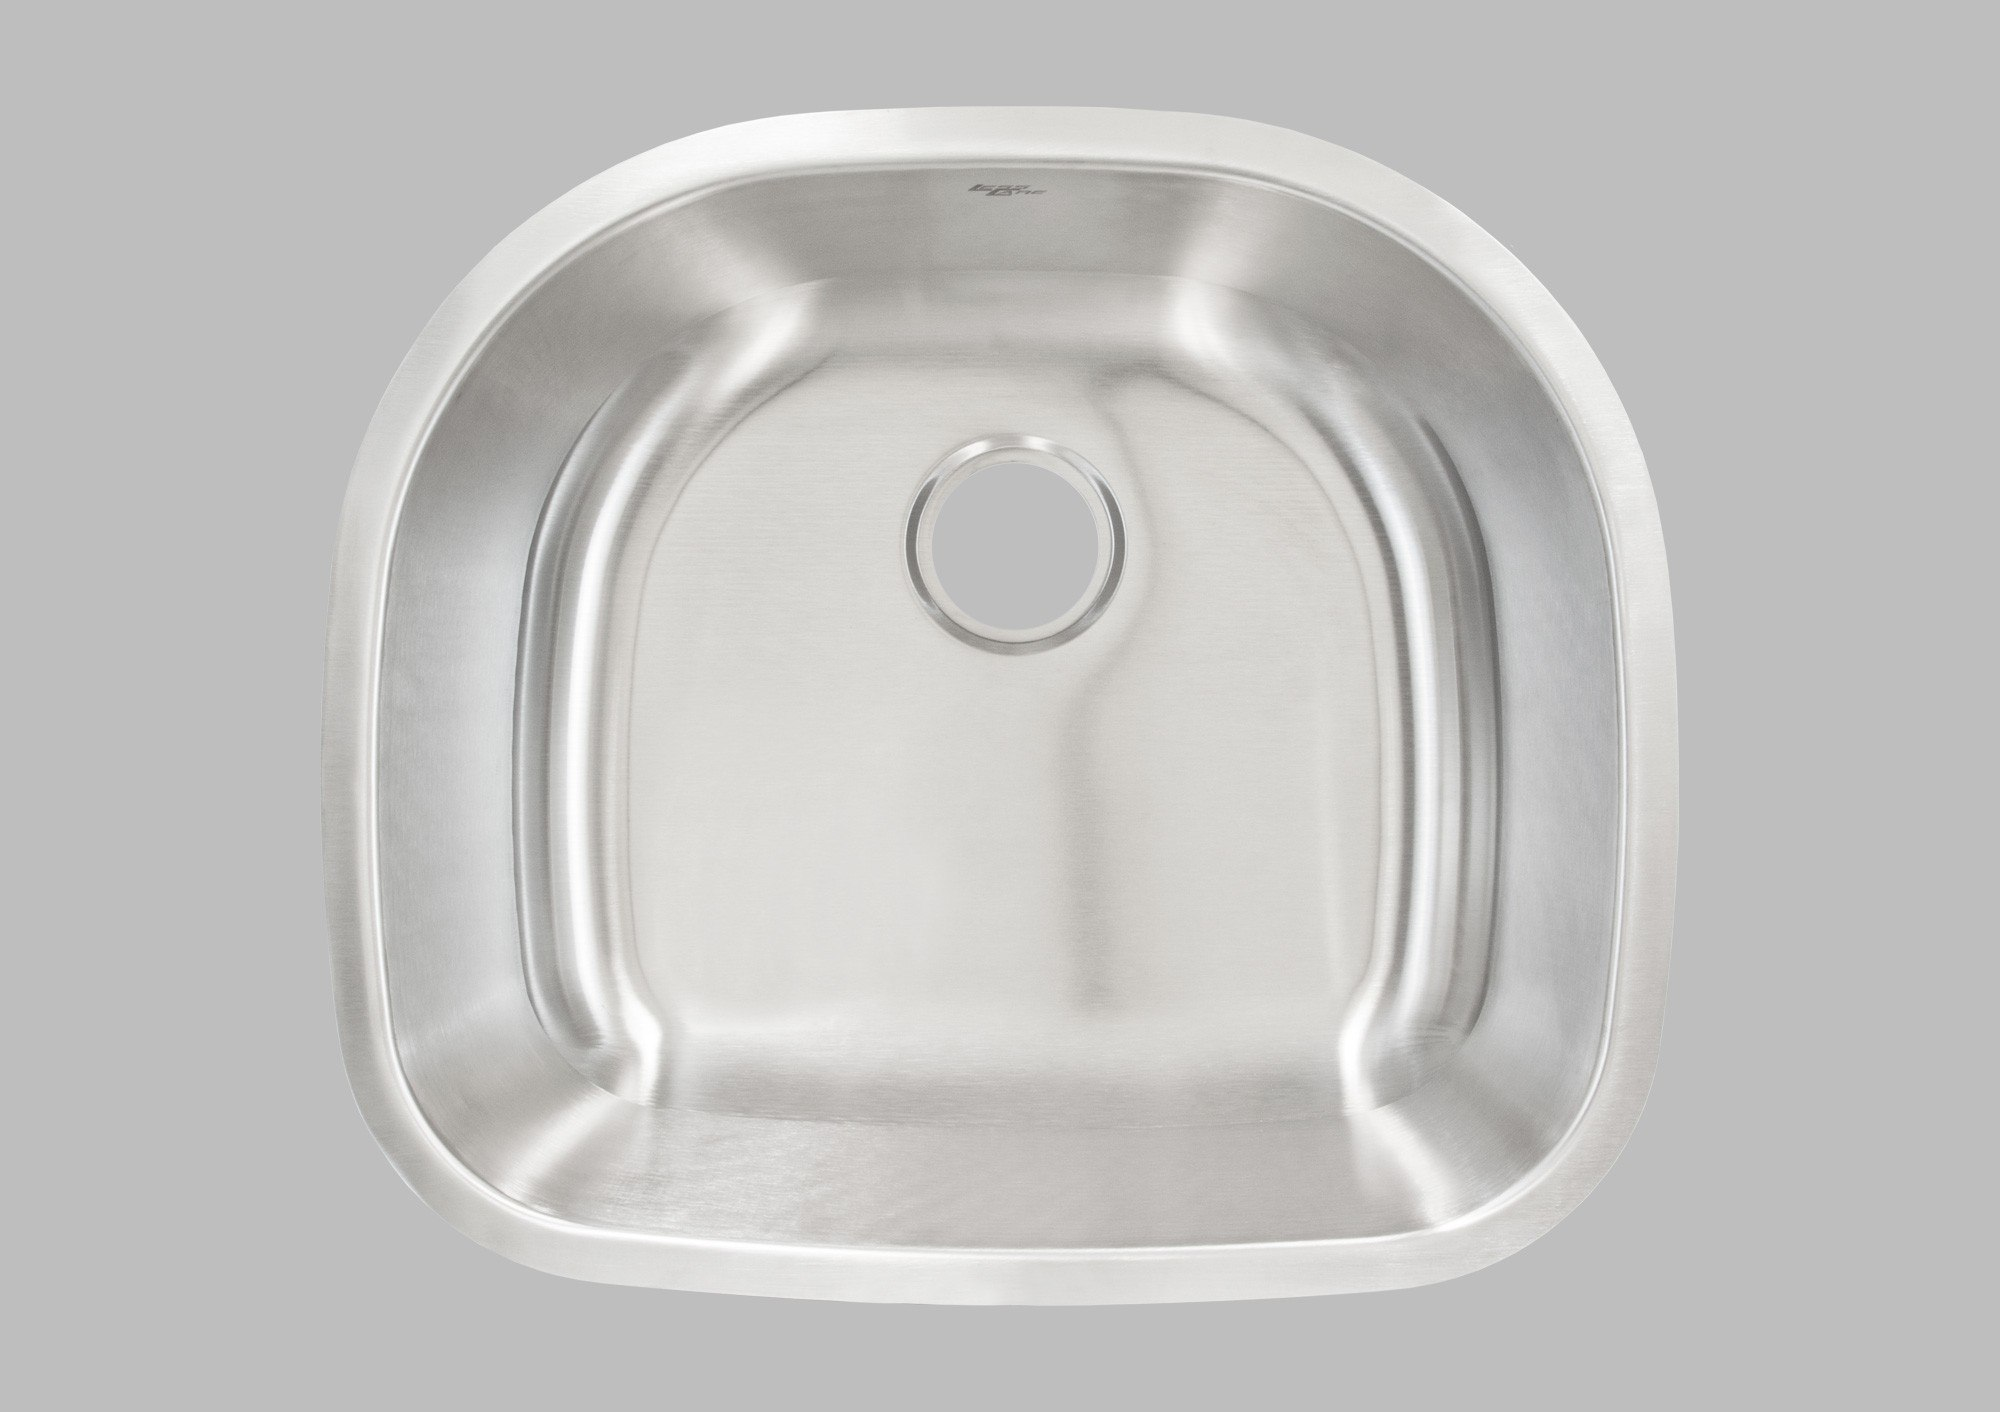 LESS CARE L105 23 INCH UNDERMOUNT SINGLE BOWL KITCHEN SINK